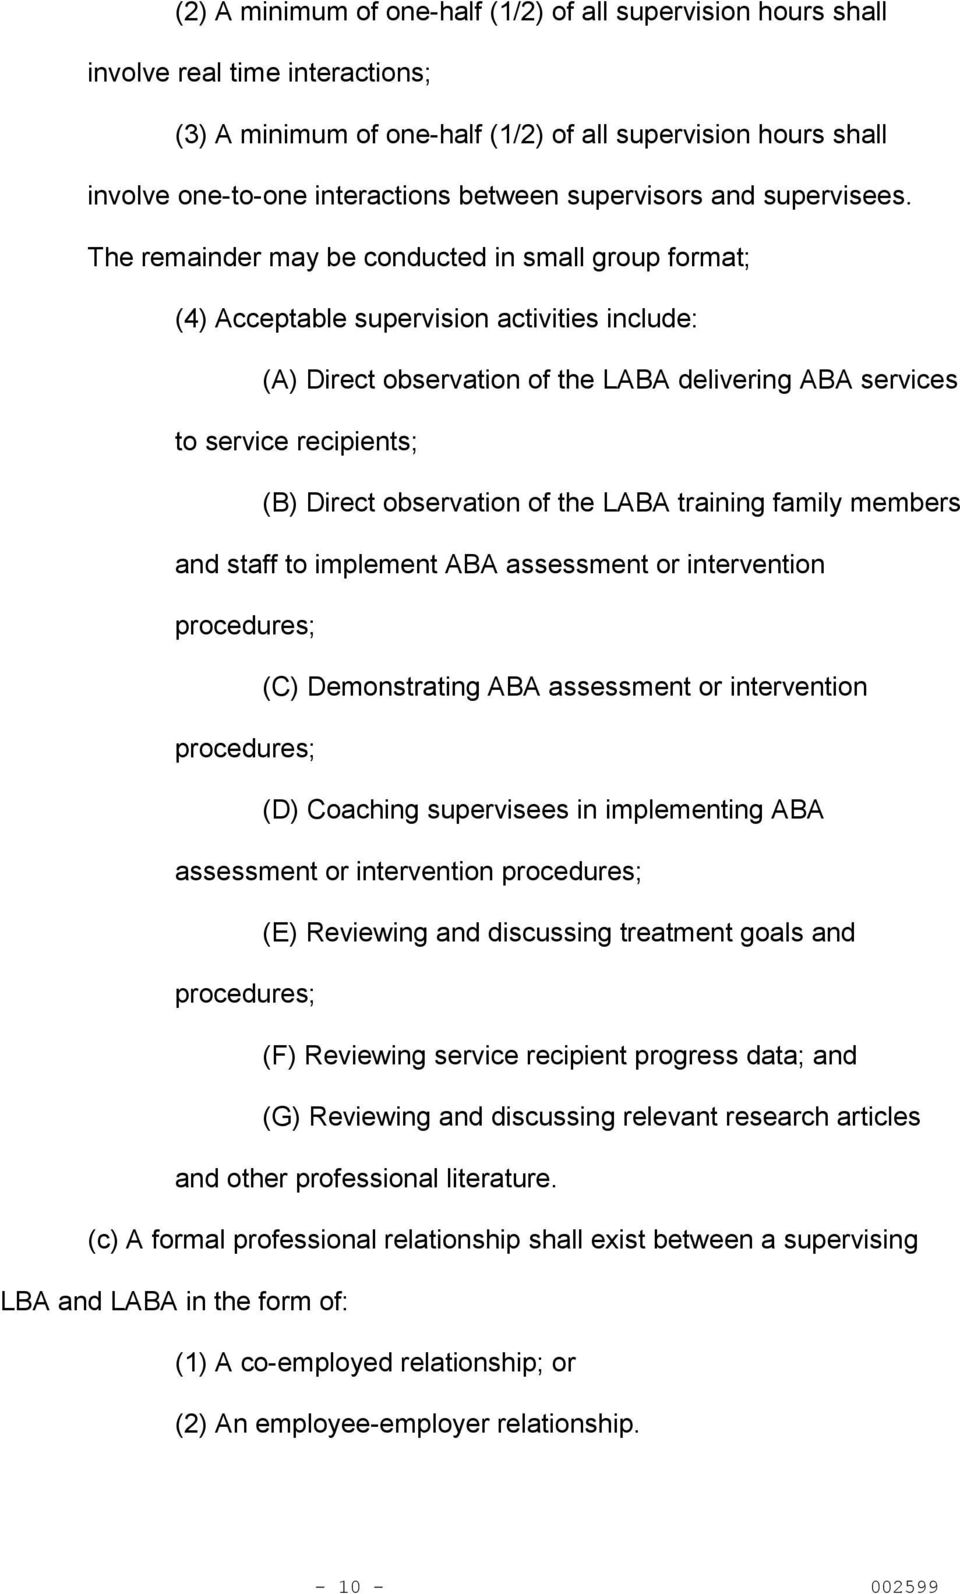 The remainder may be conducted in small group format; (4) Acceptable supervision activities include: (A) Direct observation of the LABA delivering ABA services to service recipients; (B) Direct